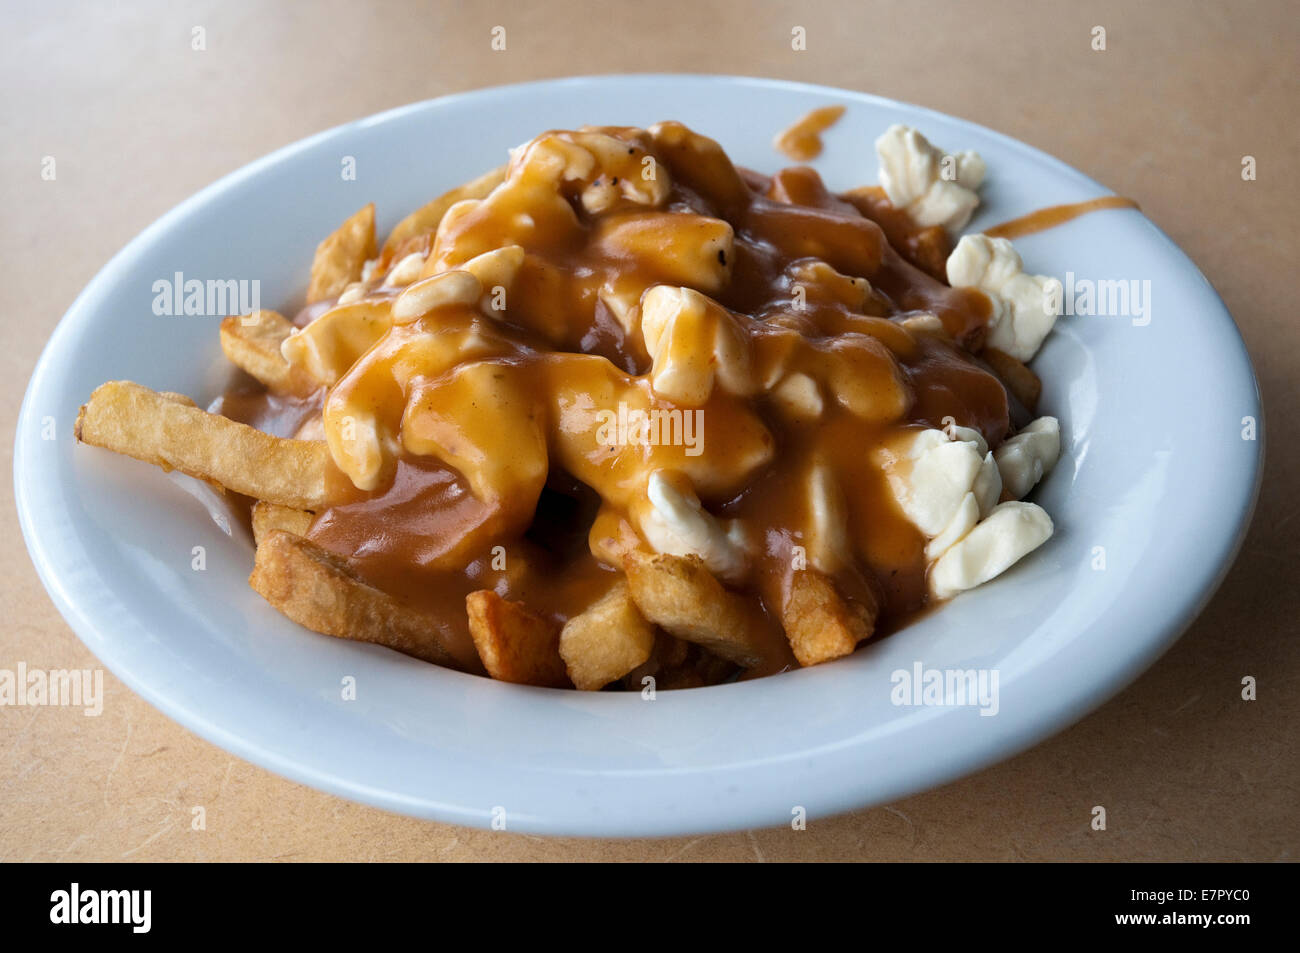 The famous 'traditional' poutine at Le Roy Jucep restaurant in Drummondville, Quebec, Canada. - Stock Image